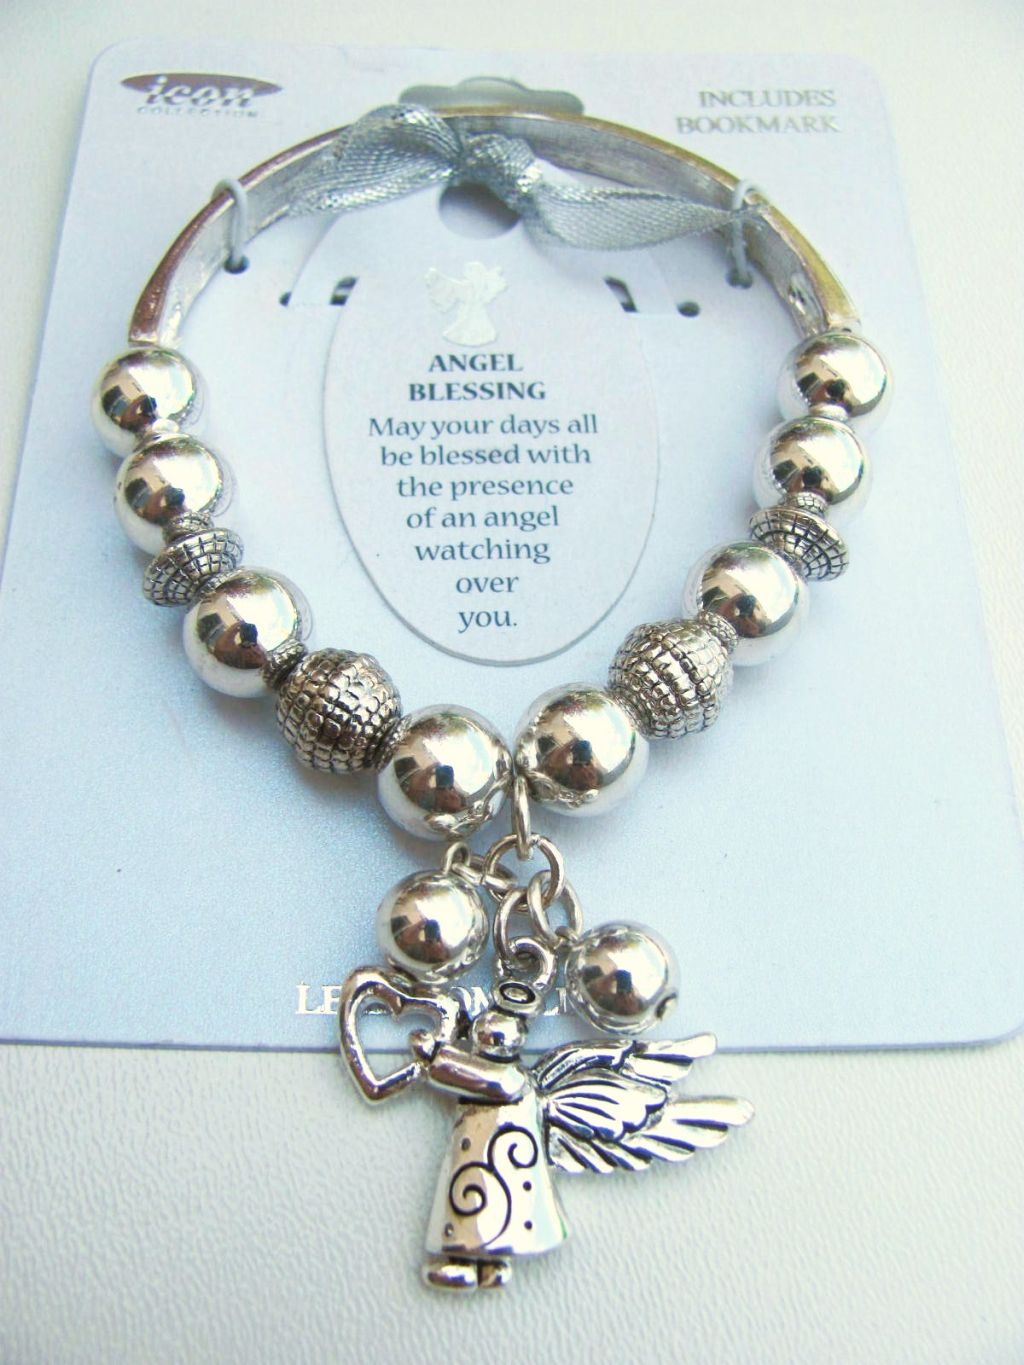 Angel Blessing Charm Inspirational Message Bracelet, Silver Tone